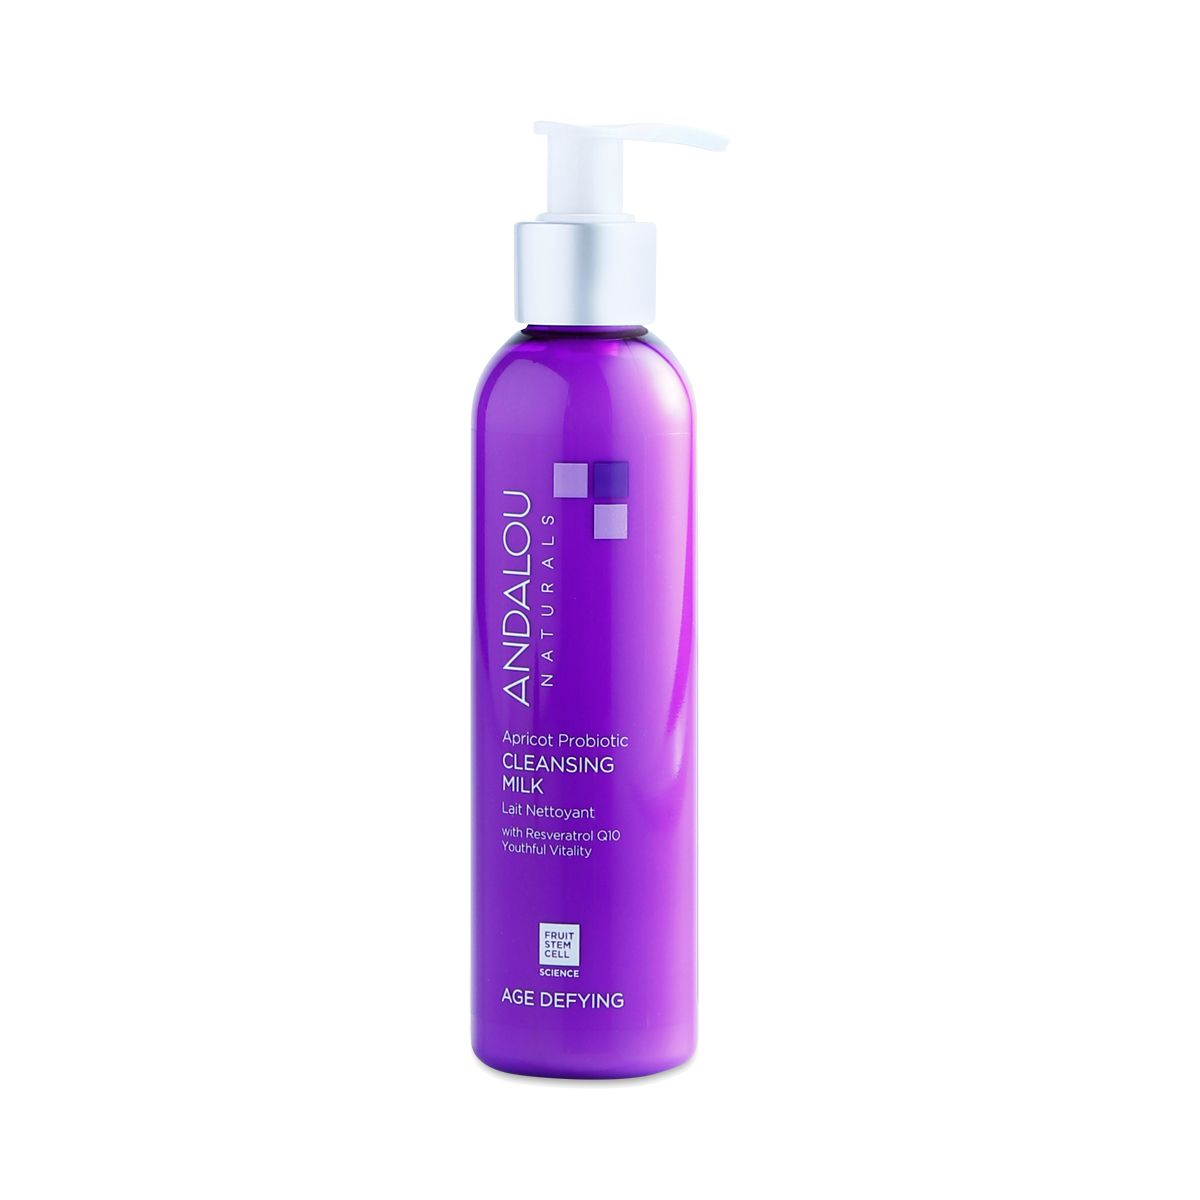 Dry skin will soak up Andalou Naturals Cleansing Milk, fortified with fruit stem cells, CoQ10, and skin-safe probiotics. Use morning and night.